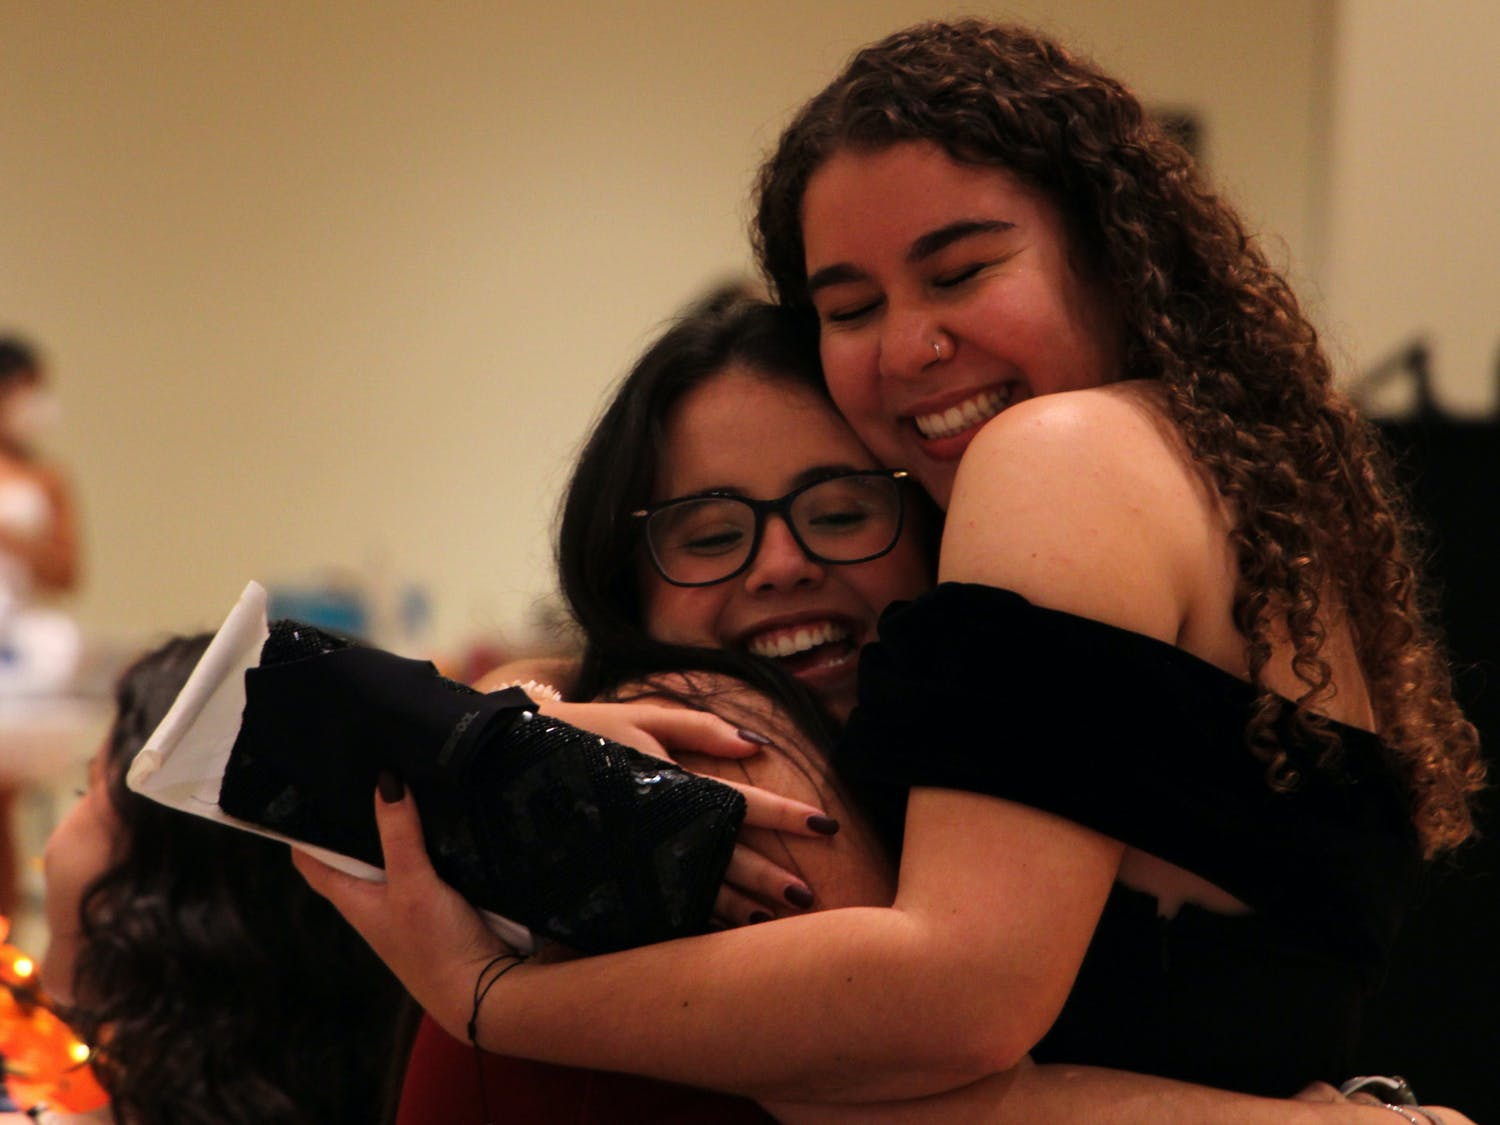 Daniella Duarte (left), 20, UF finance sophomore, receives a hug from her friend Gabriella Barreras (right), 20, UF advertising junior, during the masquerade ball in the Rion Ballroom at the Reitz Union on Thursday, Sept. 16, 2021.